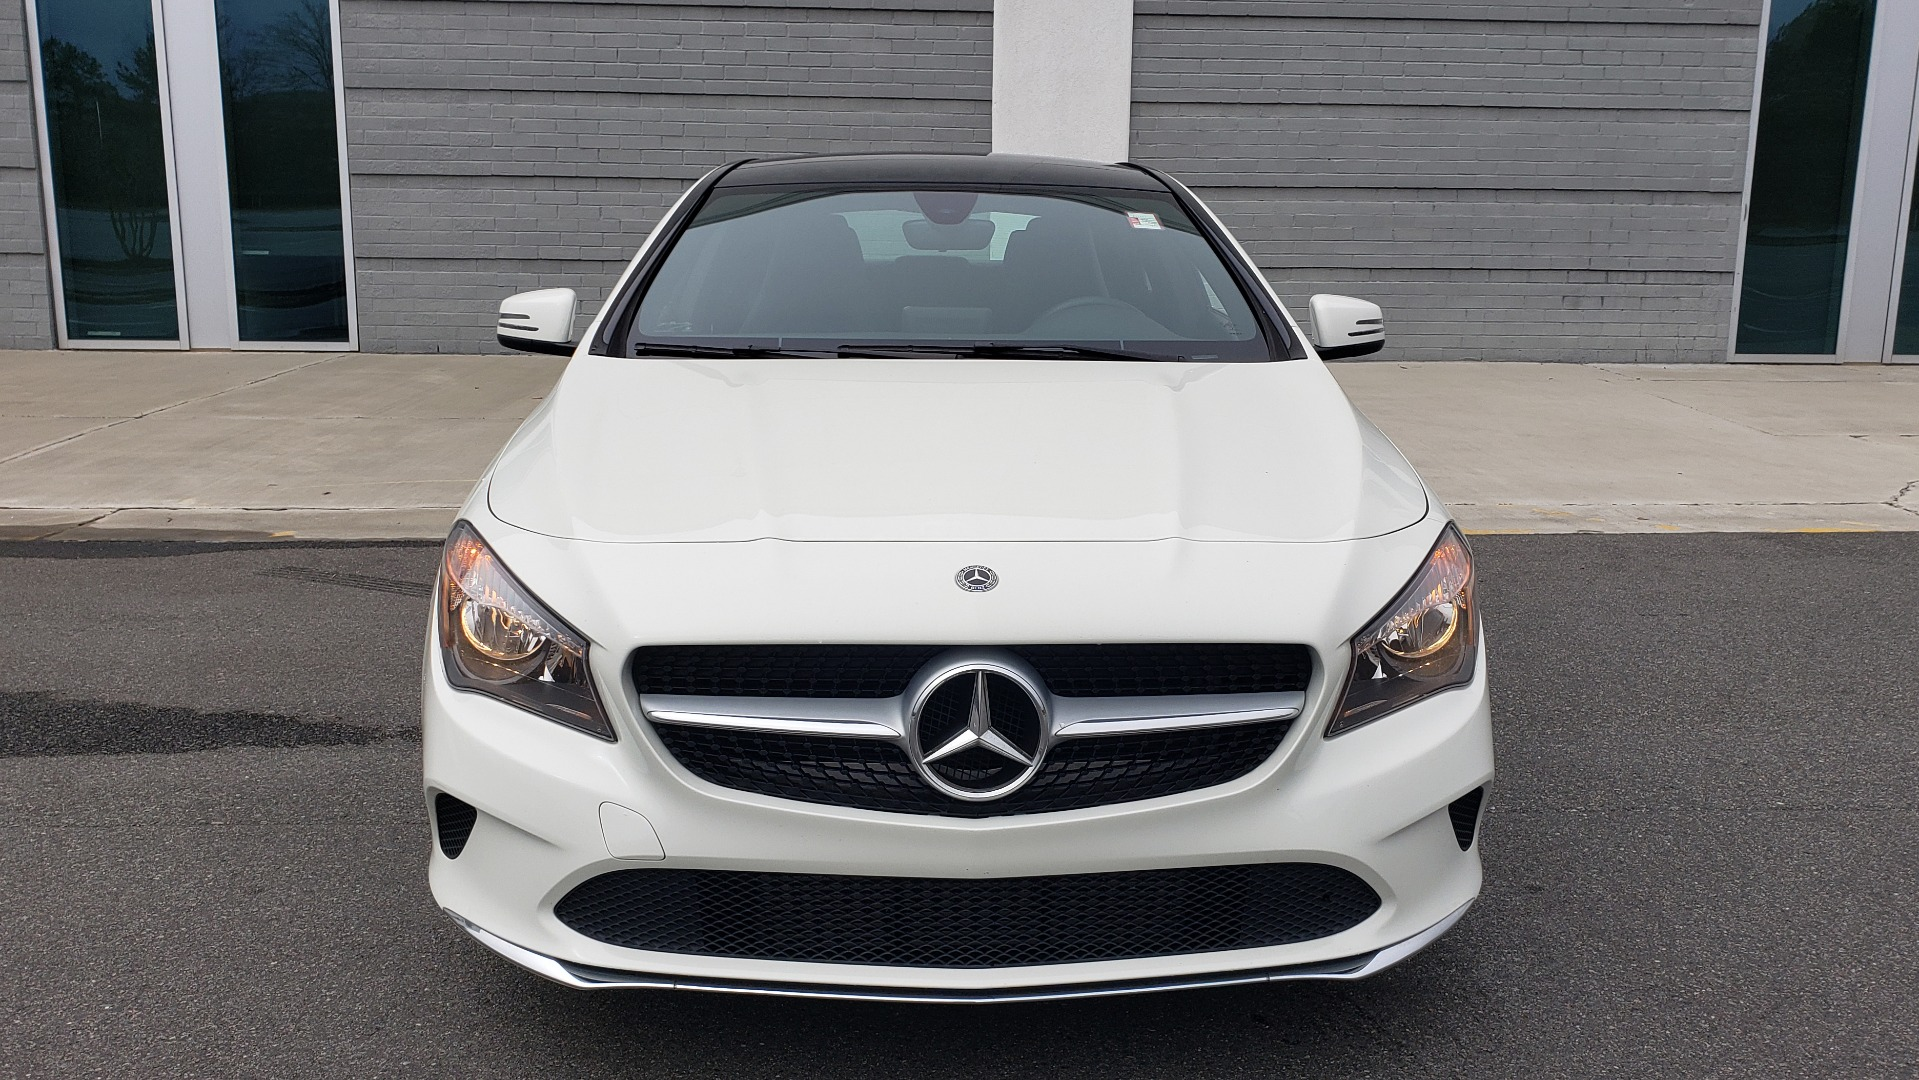 Used 2018 Mercedes-Benz CLA 250 PREMIUM / NAV / PANO-ROOF / APPLE CARPLAY / REARVIEW for sale $23,995 at Formula Imports in Charlotte NC 28227 19